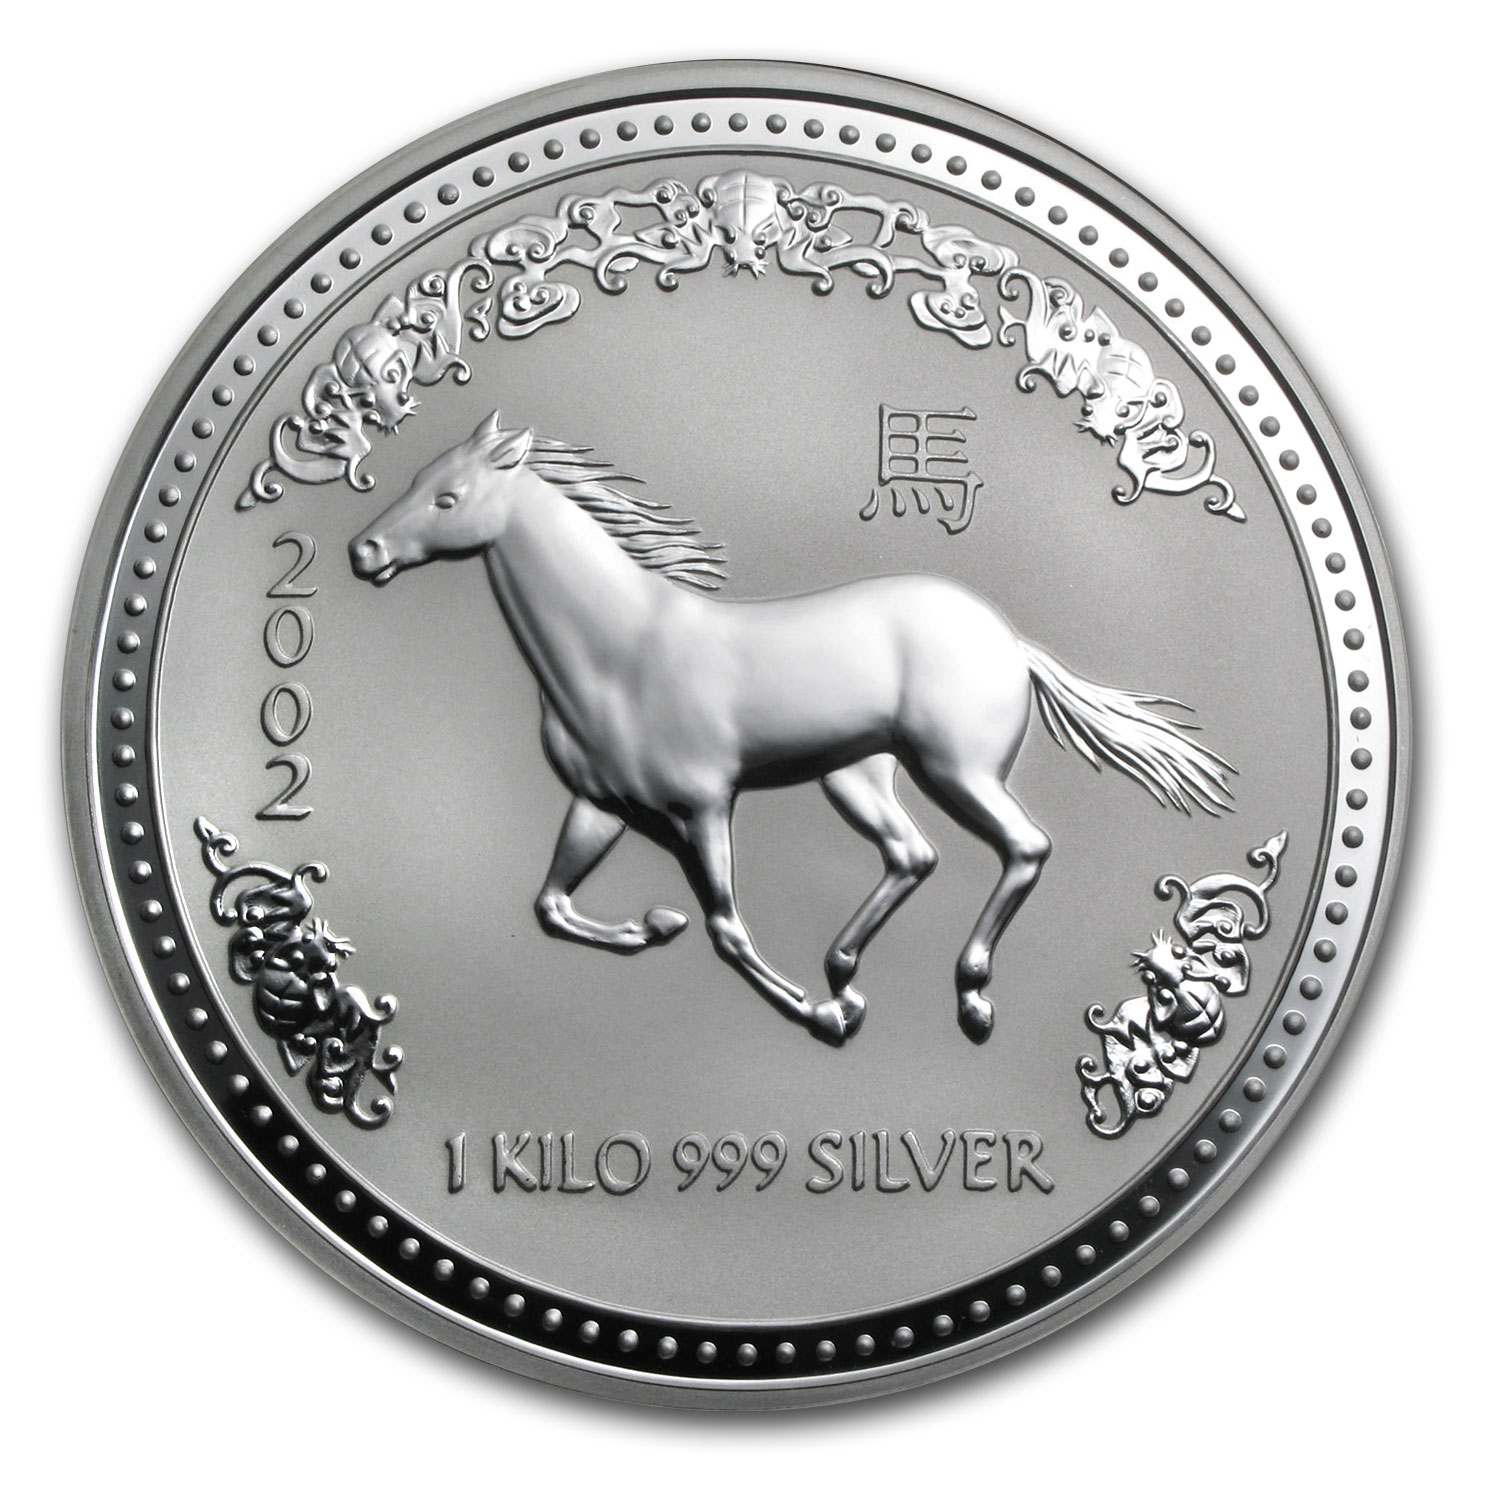 2002 Australia 1 Kilo Silver Year Of The Horse Bu Silver